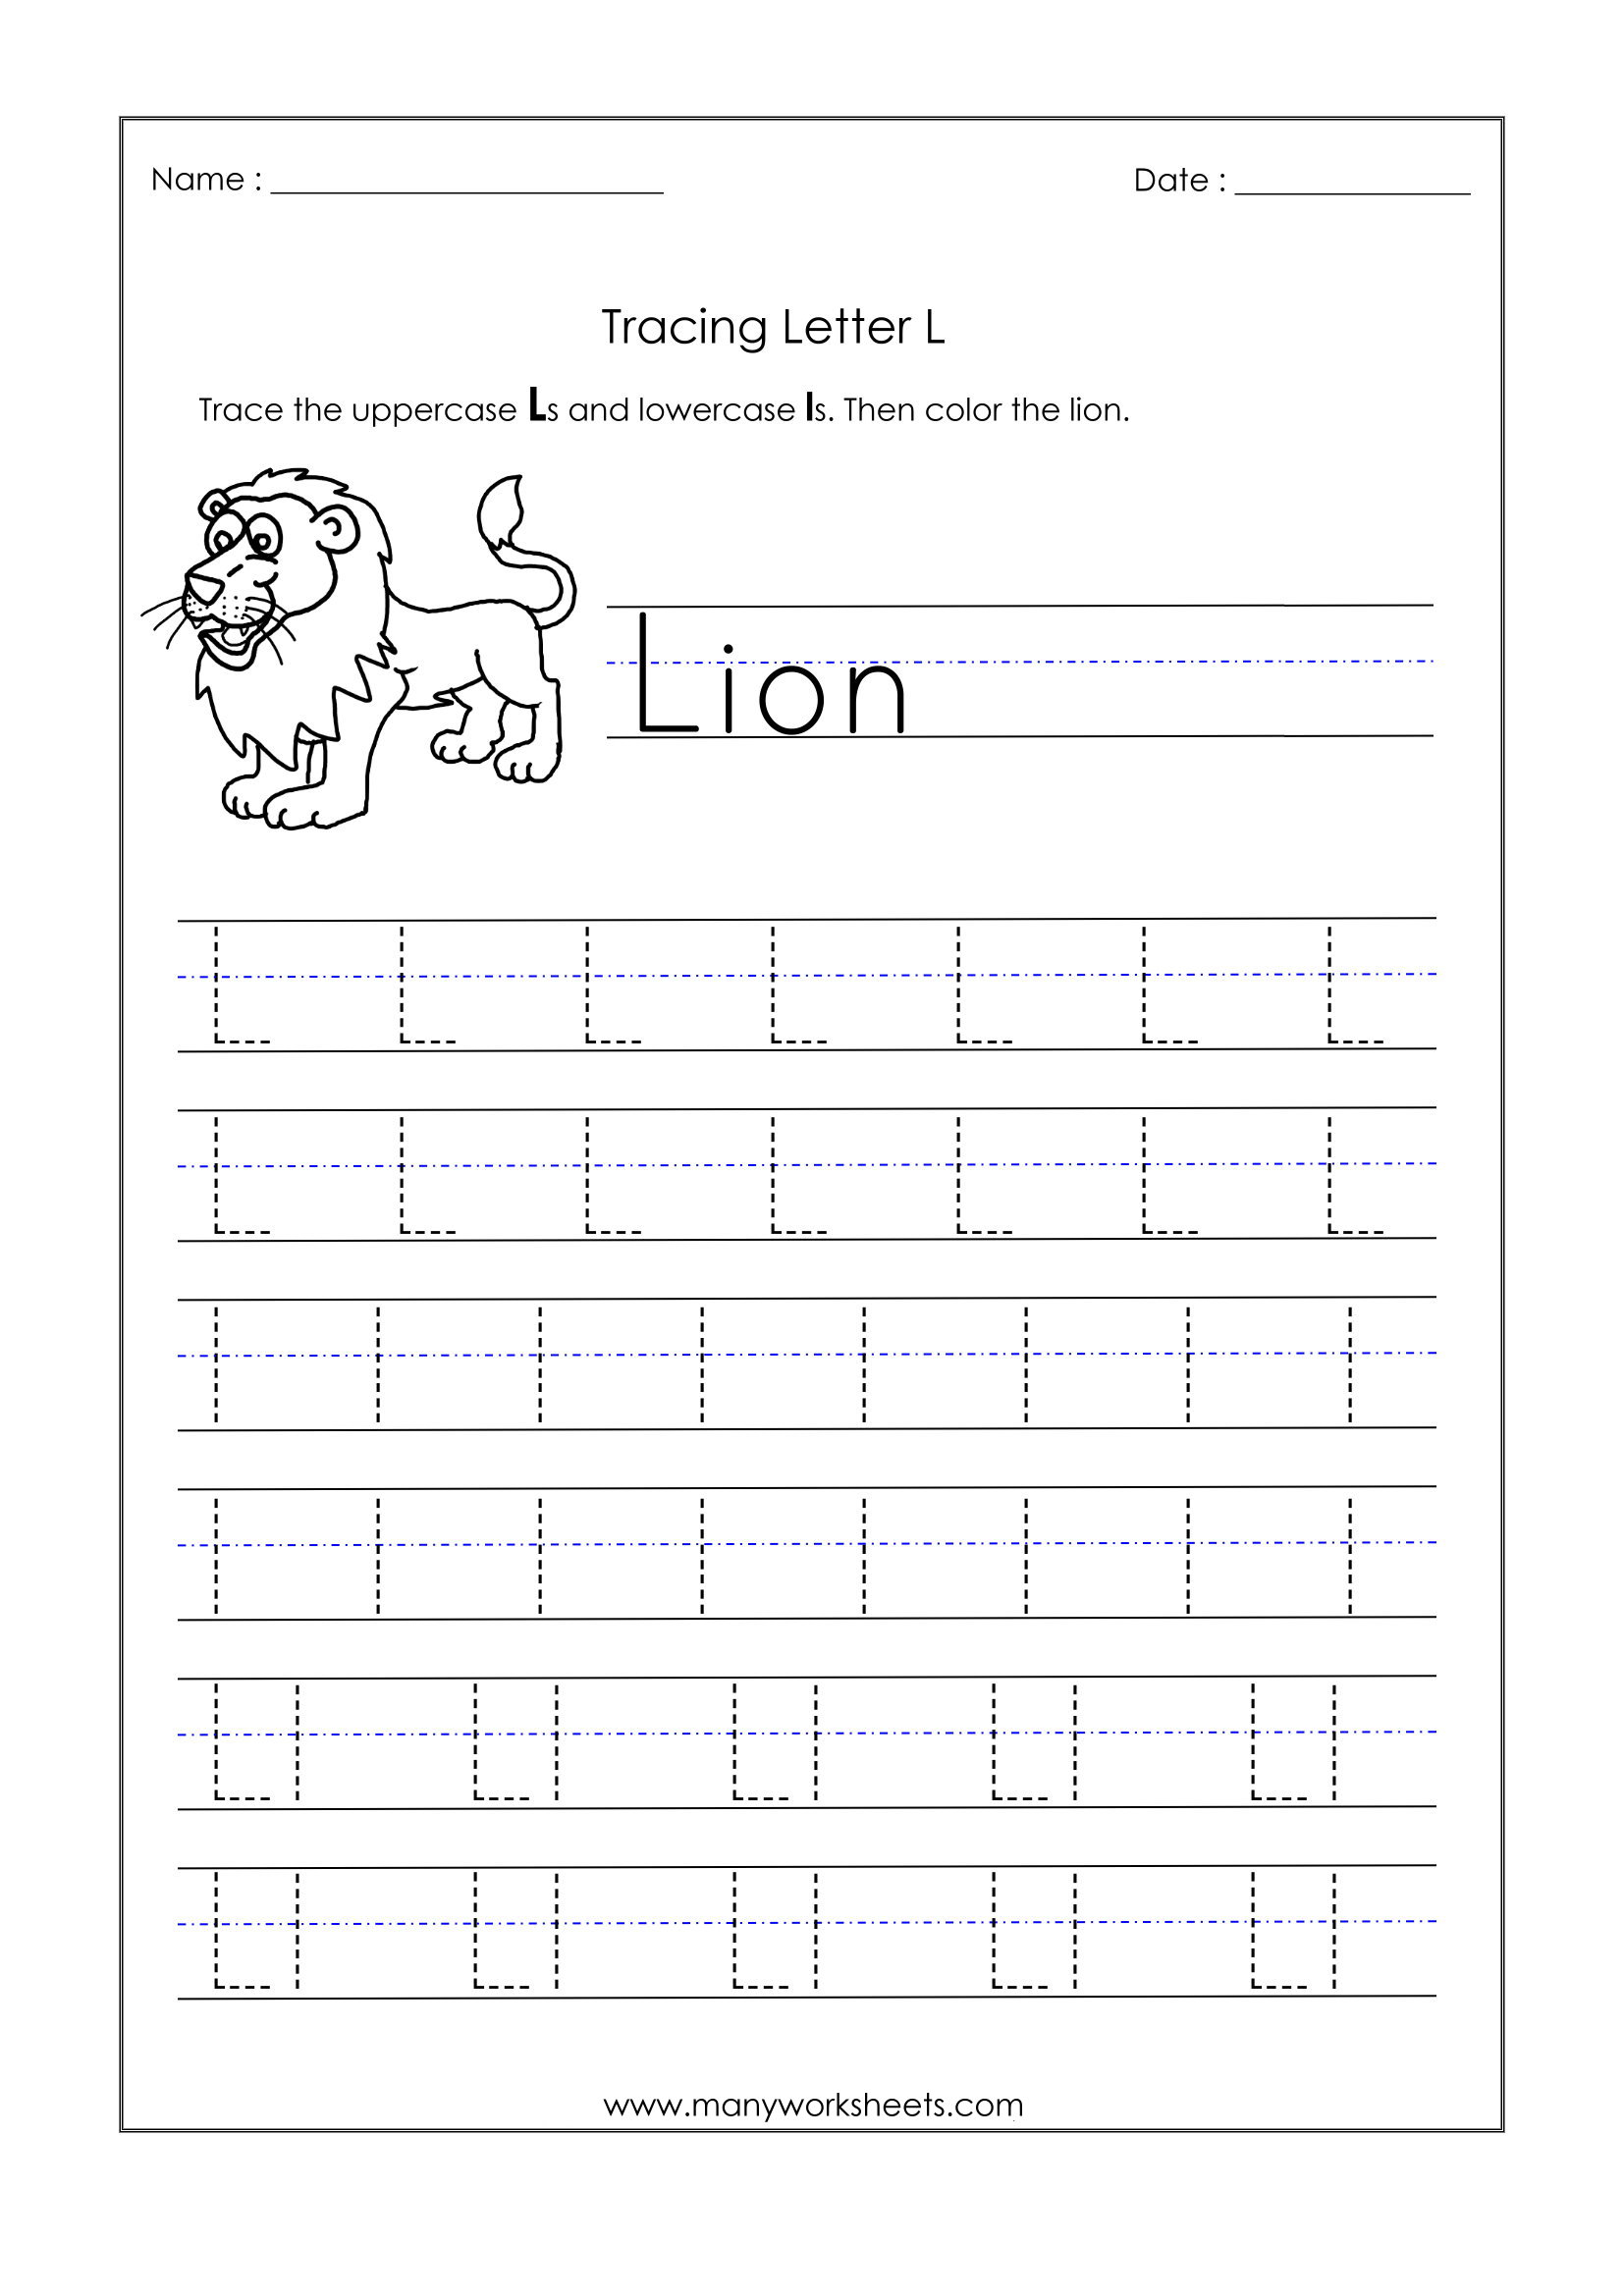 Letter Tracingsheets Incredible Image Ideas L Foren Trace with regard to L Letter Worksheets